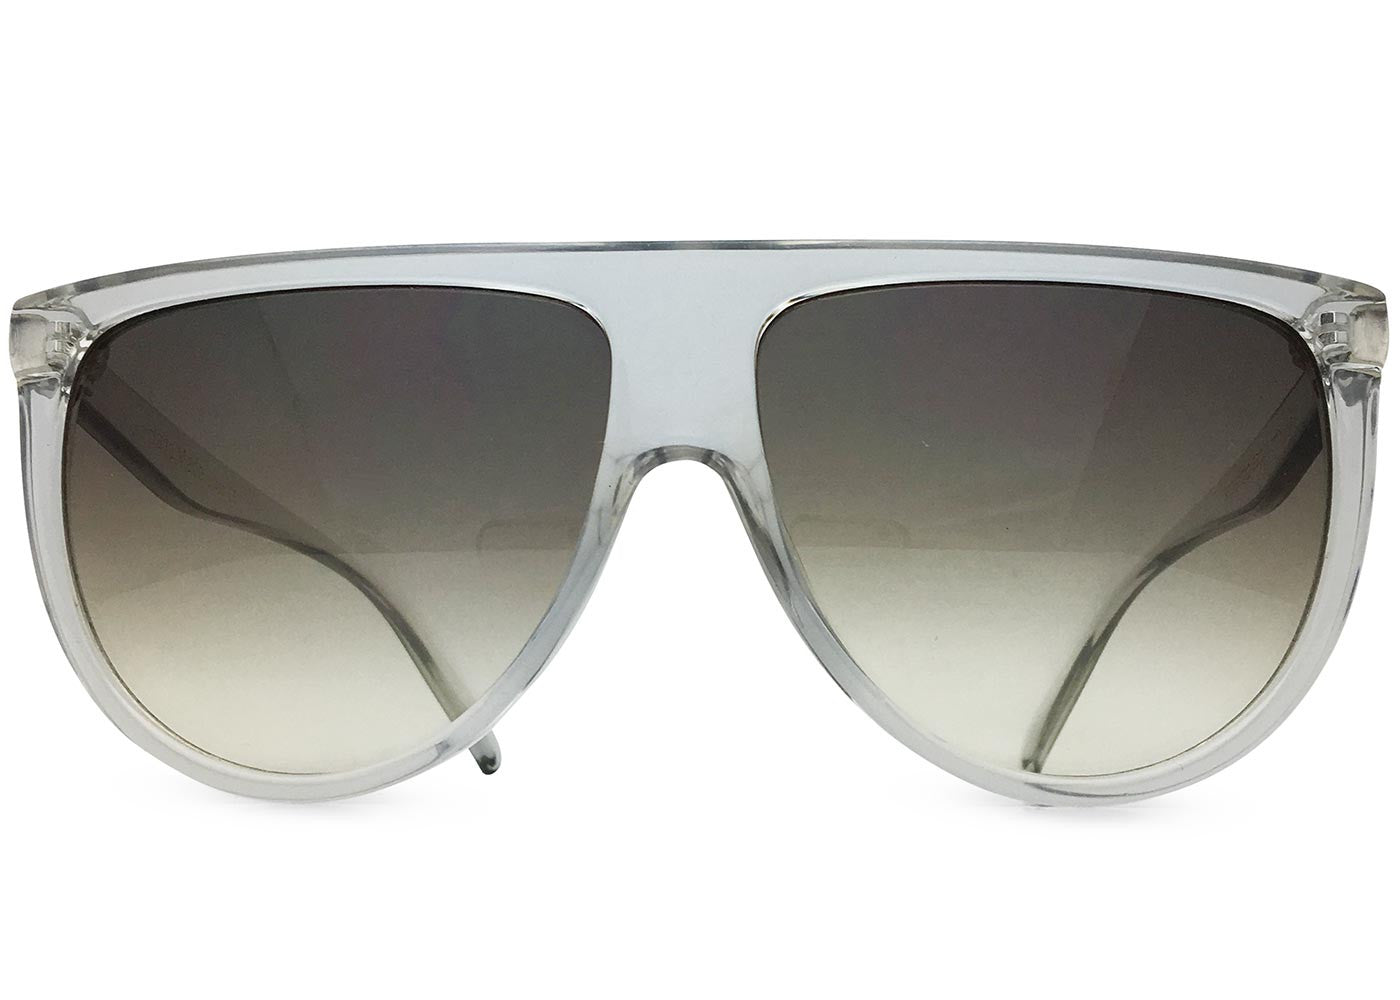 Lux Flat Top Sunglasses in Princeton